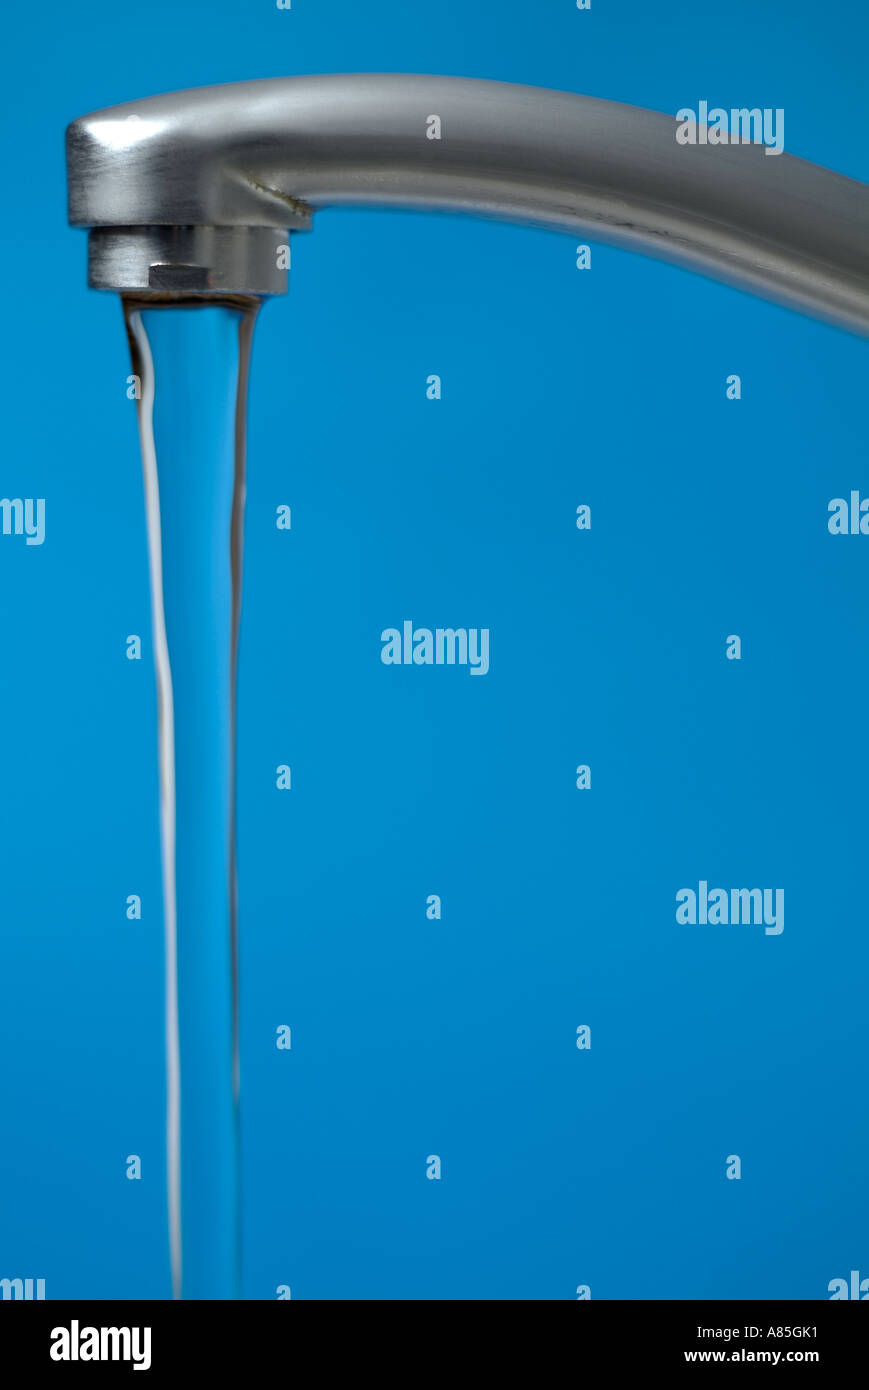 Household Water Supply Stock Photos & Household Water Supply Stock ...